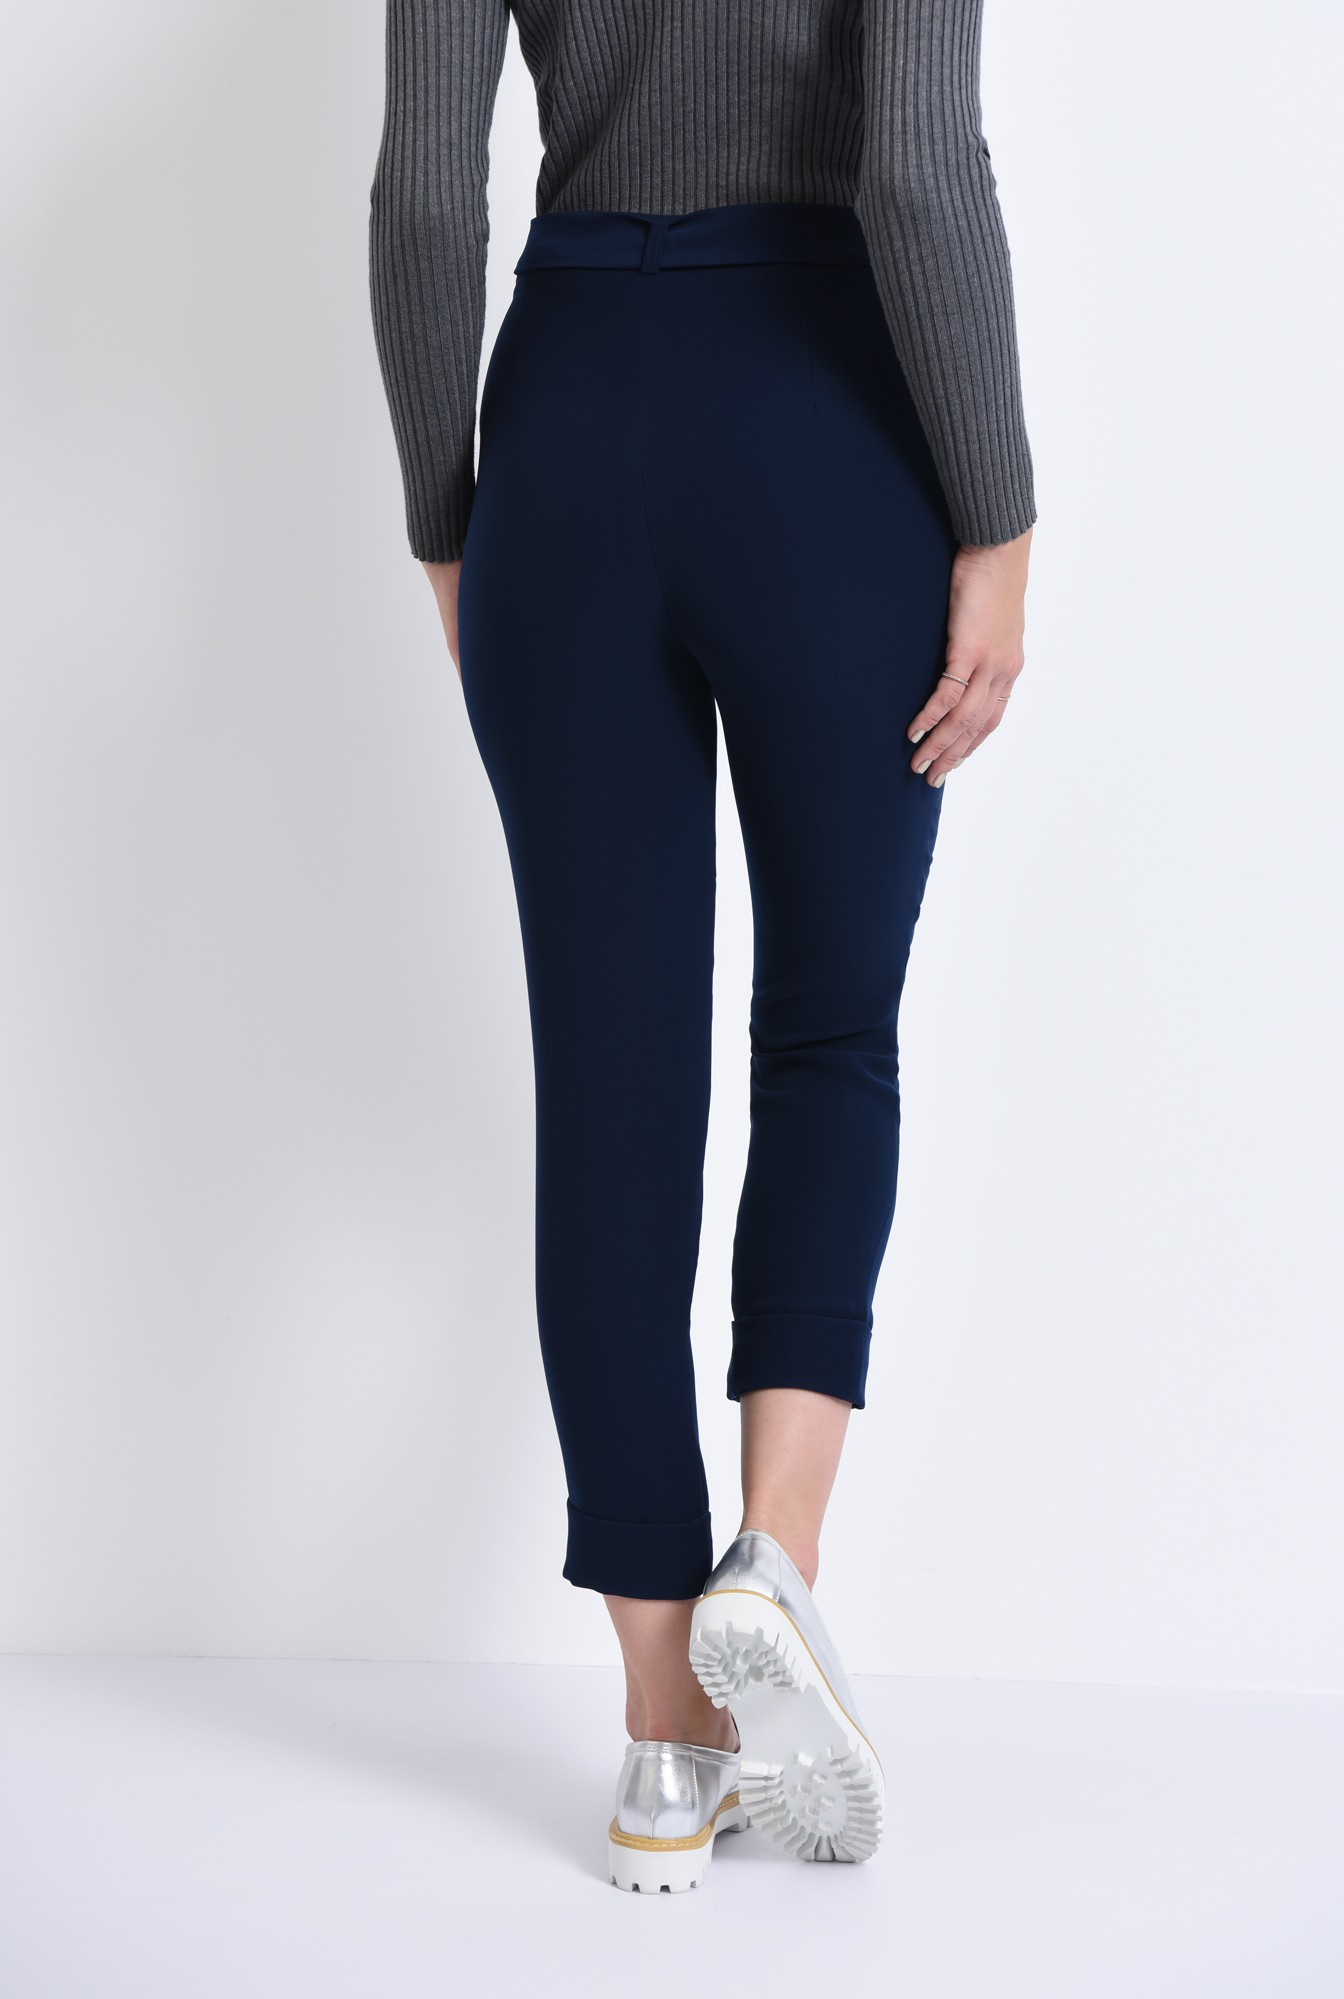 1 - PANTALON OFFICE PT 172-BLEUMARIN